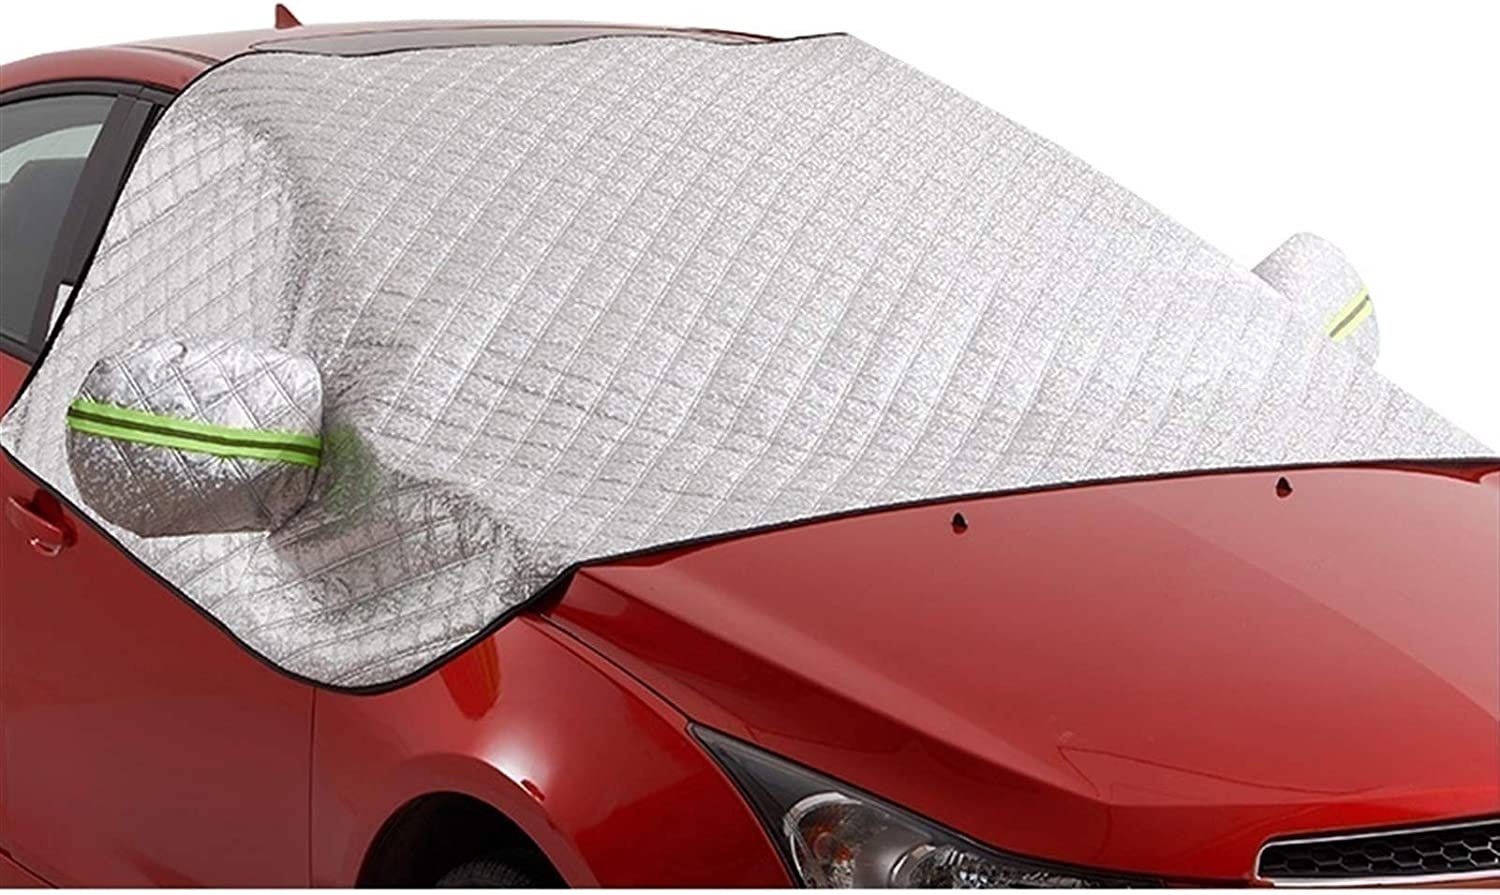 BACKJIA Car Cover Windshield H Durable Special price Max 40% OFF for a limited time Outdoor Waterproof